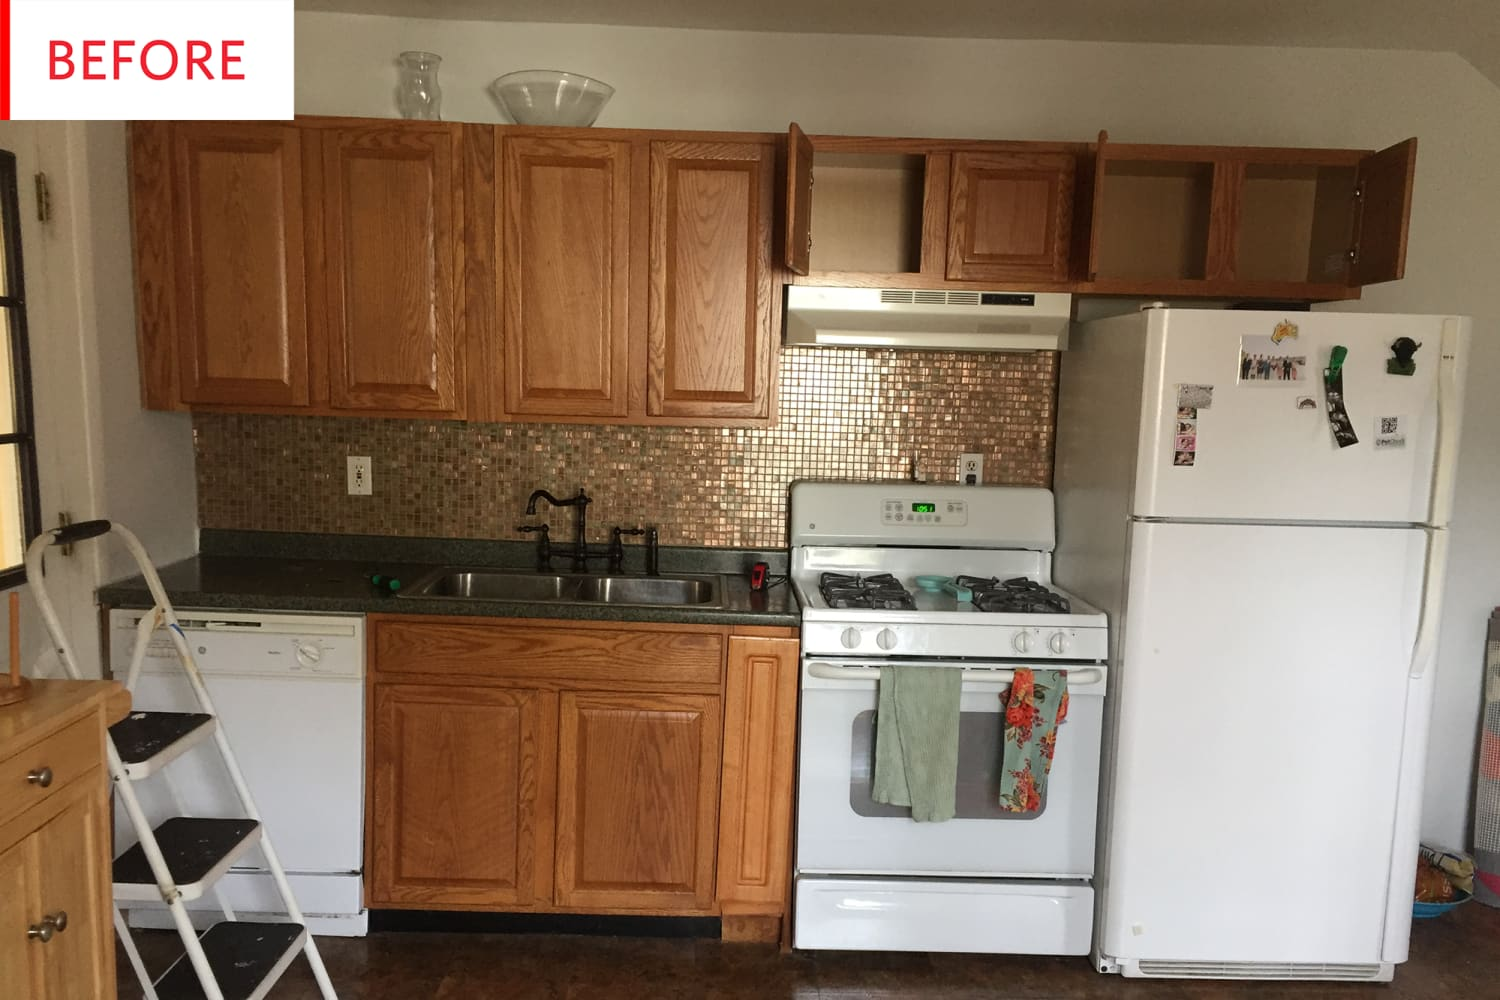 Before and After: An Unbelievable $700 Kitchen Remodel